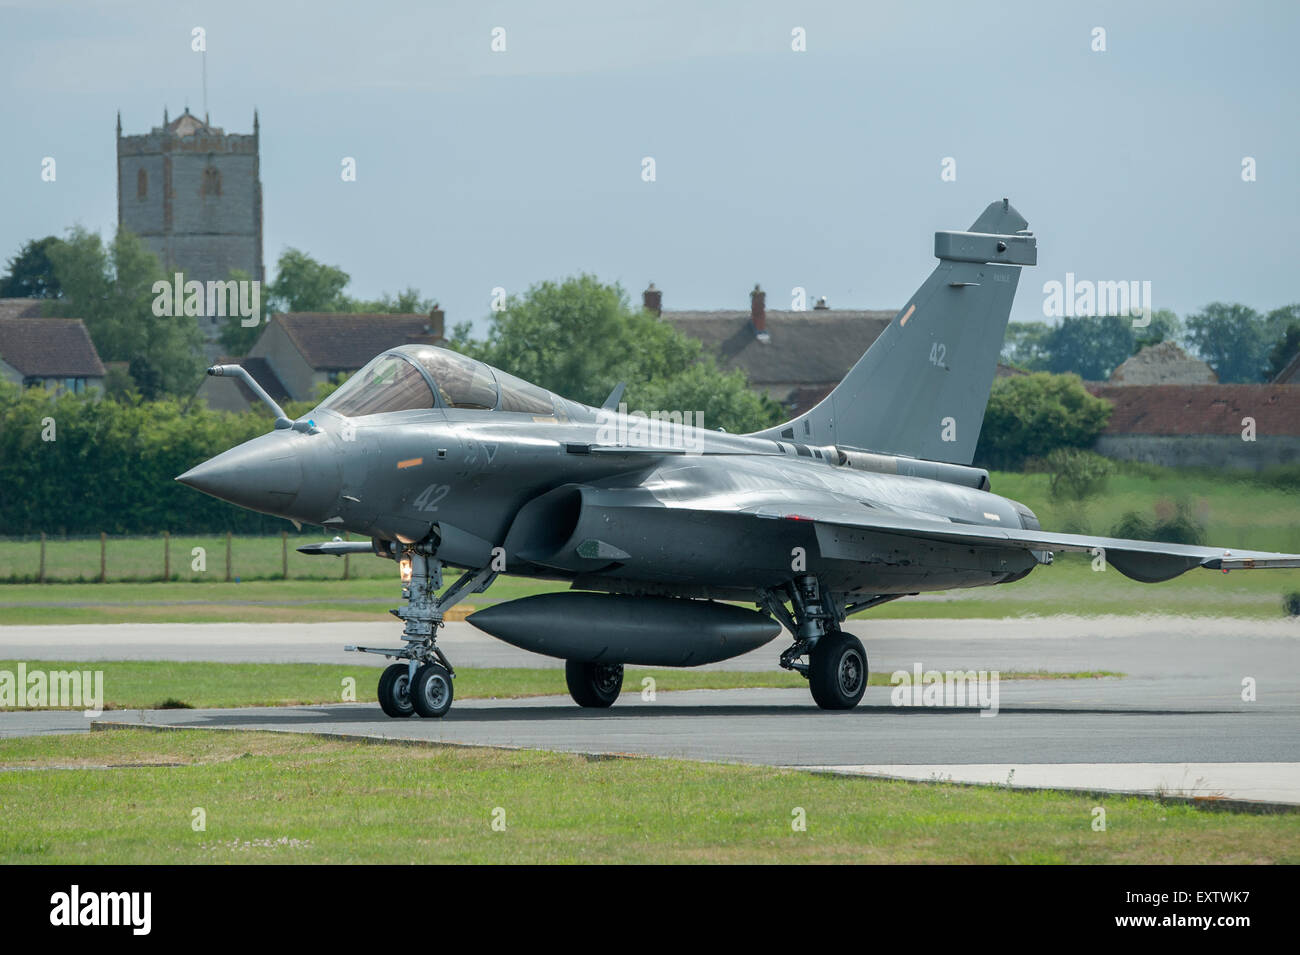 The Dassault Rafale M is a French twin-engine, canard delta wing, multirole fighter aircraft - Stock Image